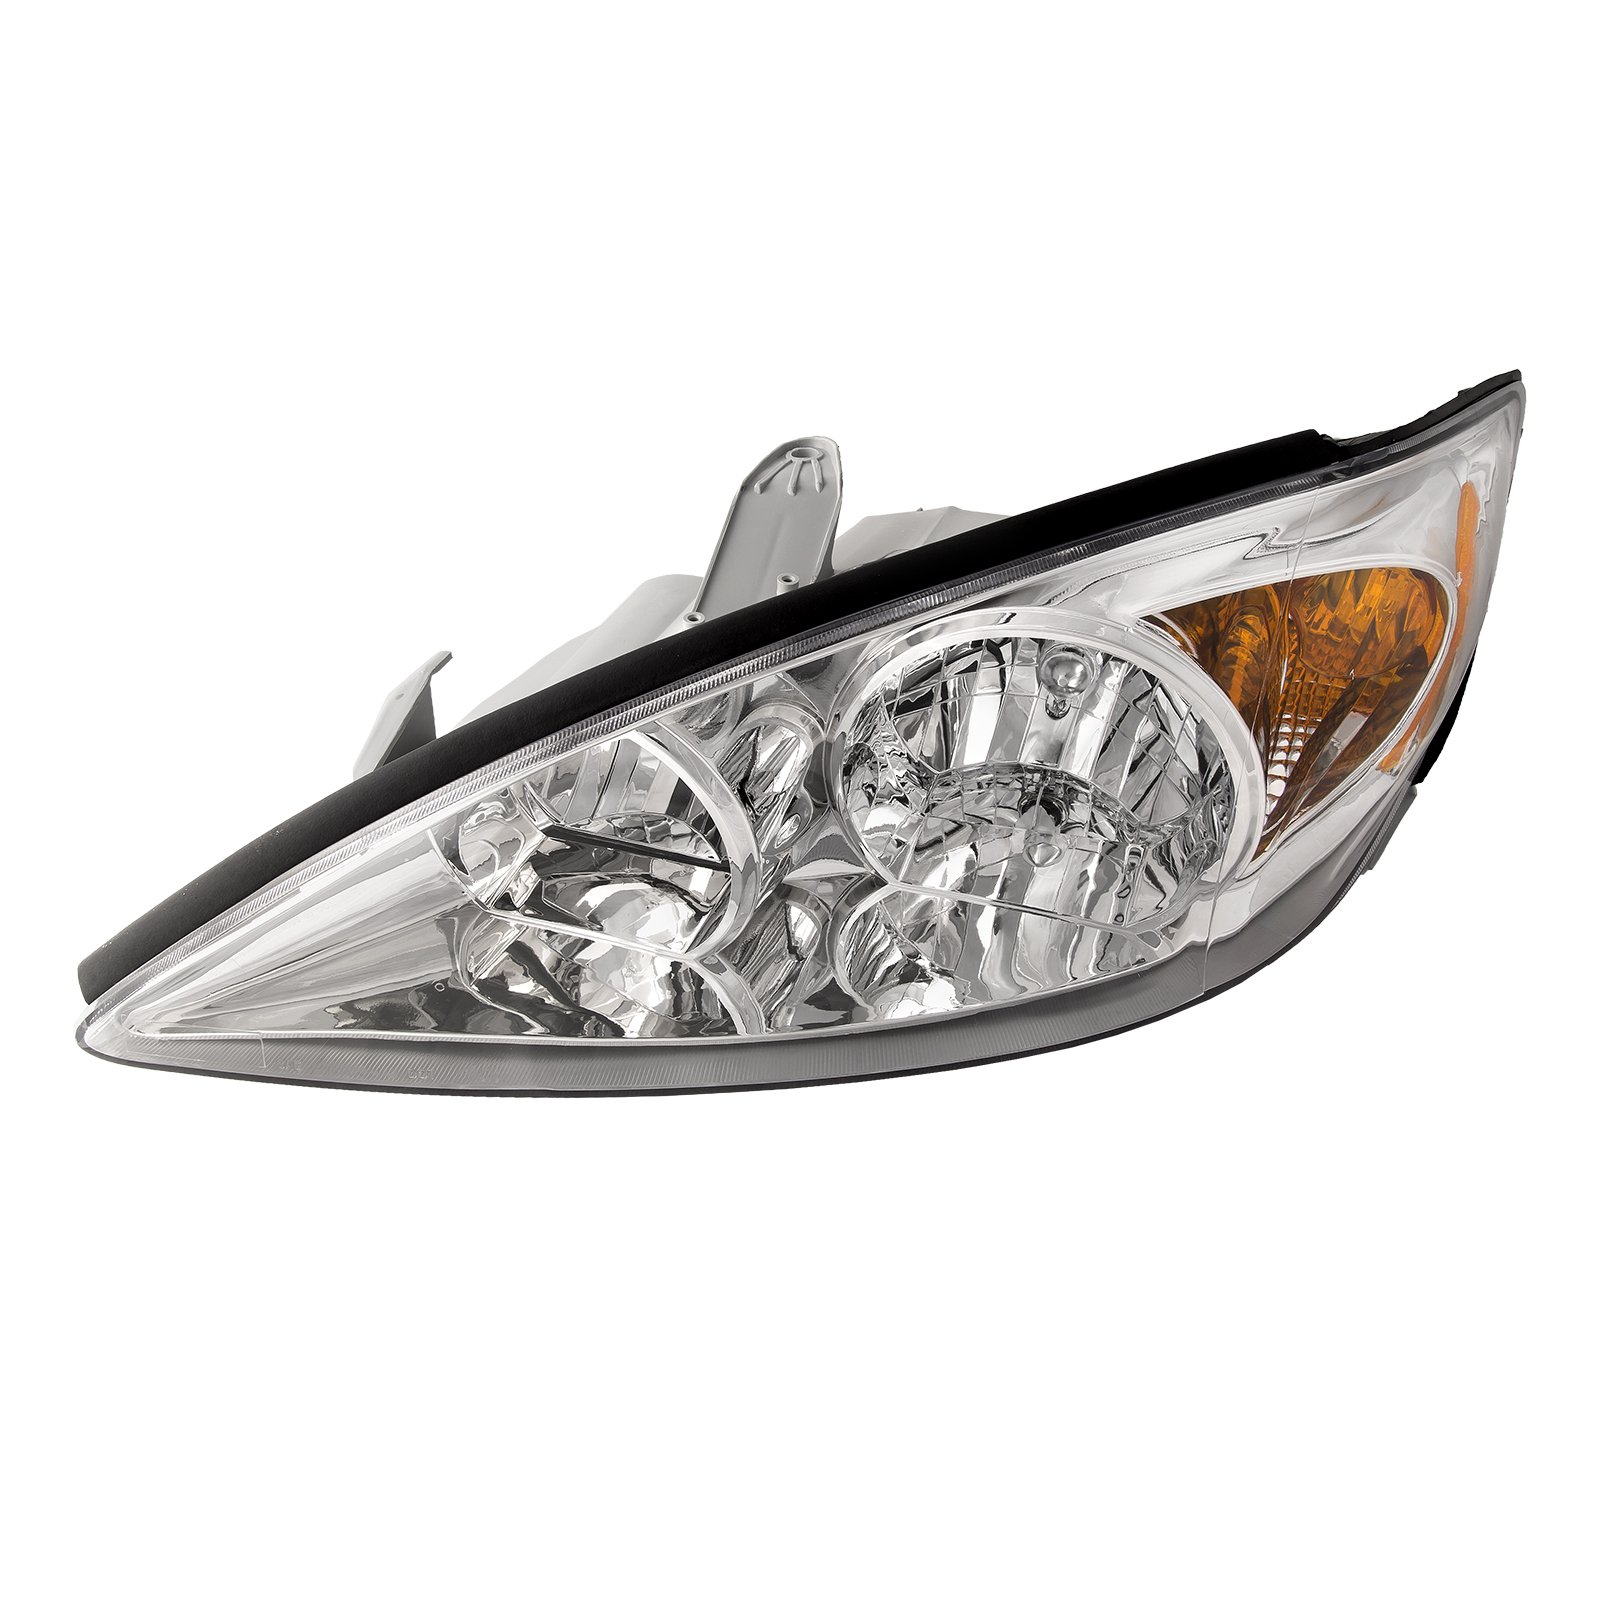 HEADLIGHTSDEPOT Chrome Housing Halogen Headlight Compatible With Toyota Camry 2002-2004 LE/XLE Models Includes Left Driver Side Headlamp